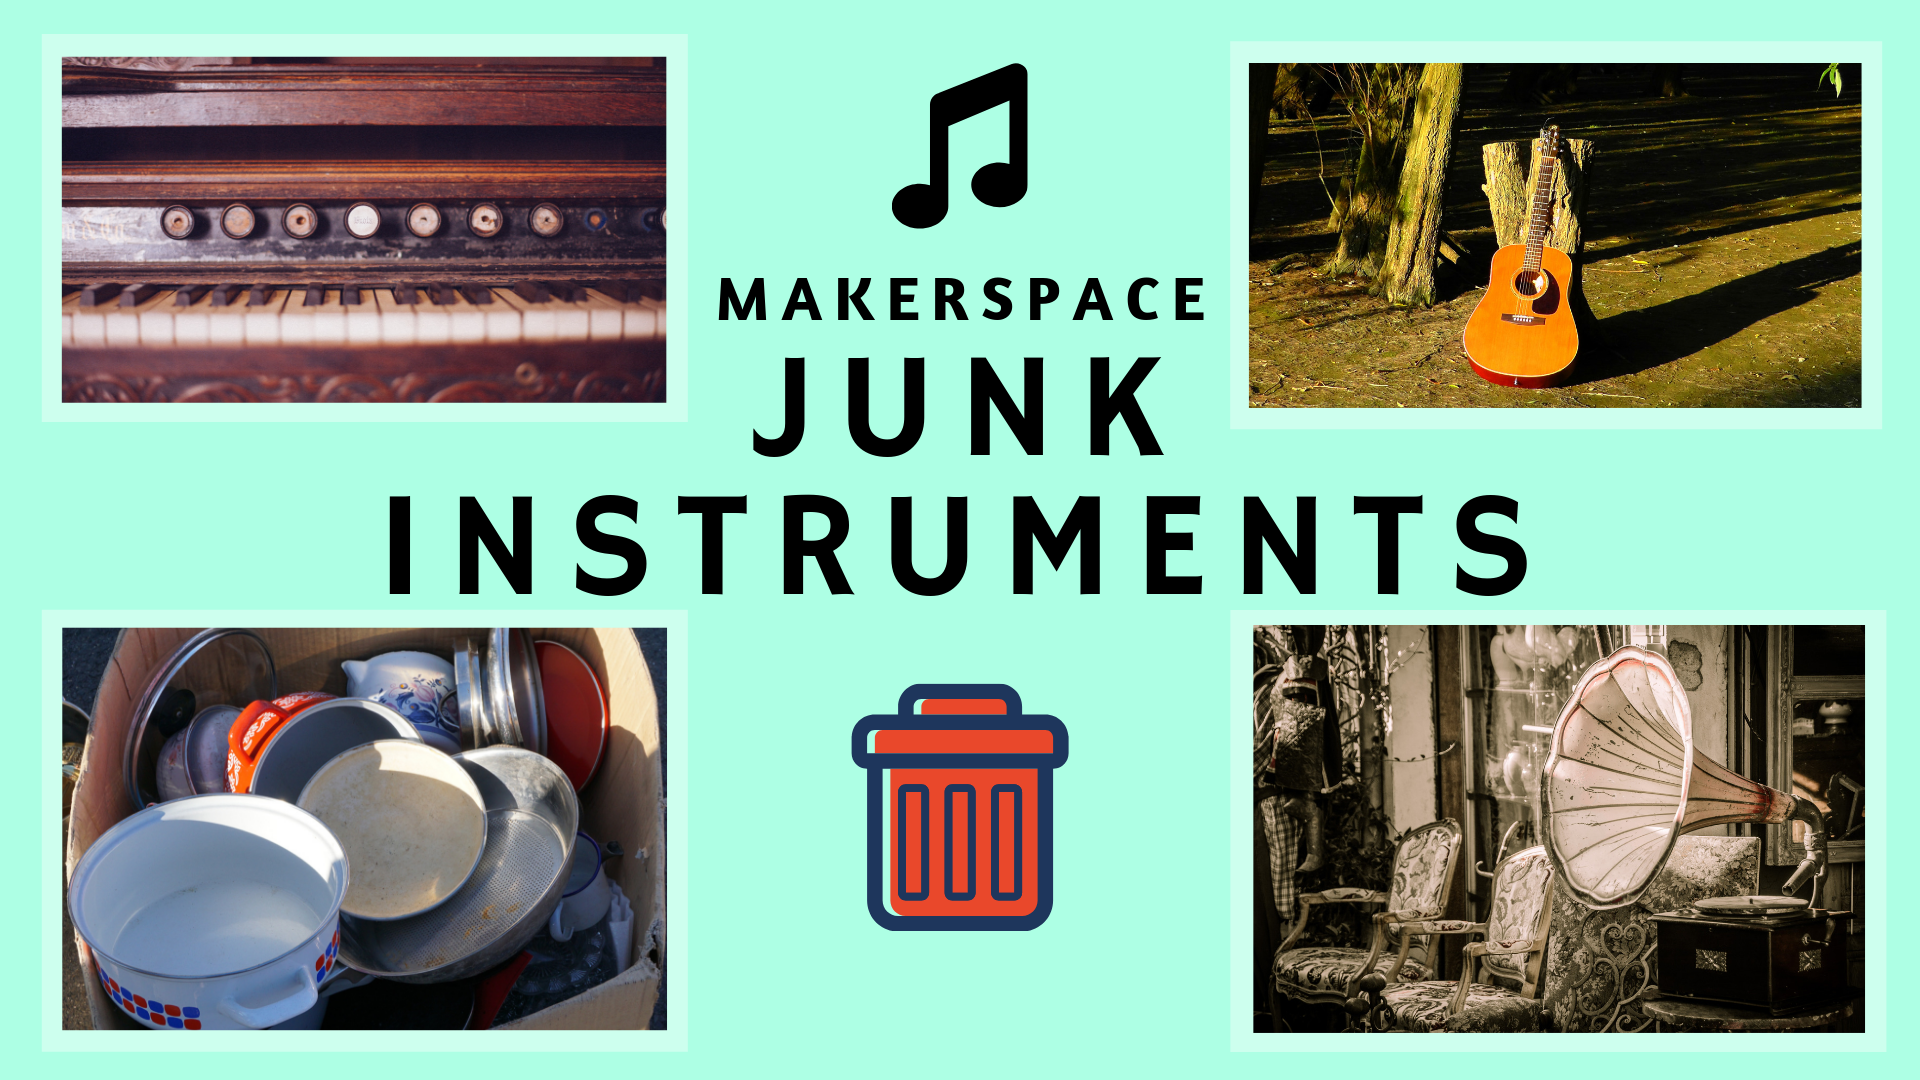 Makerspace junk instruments